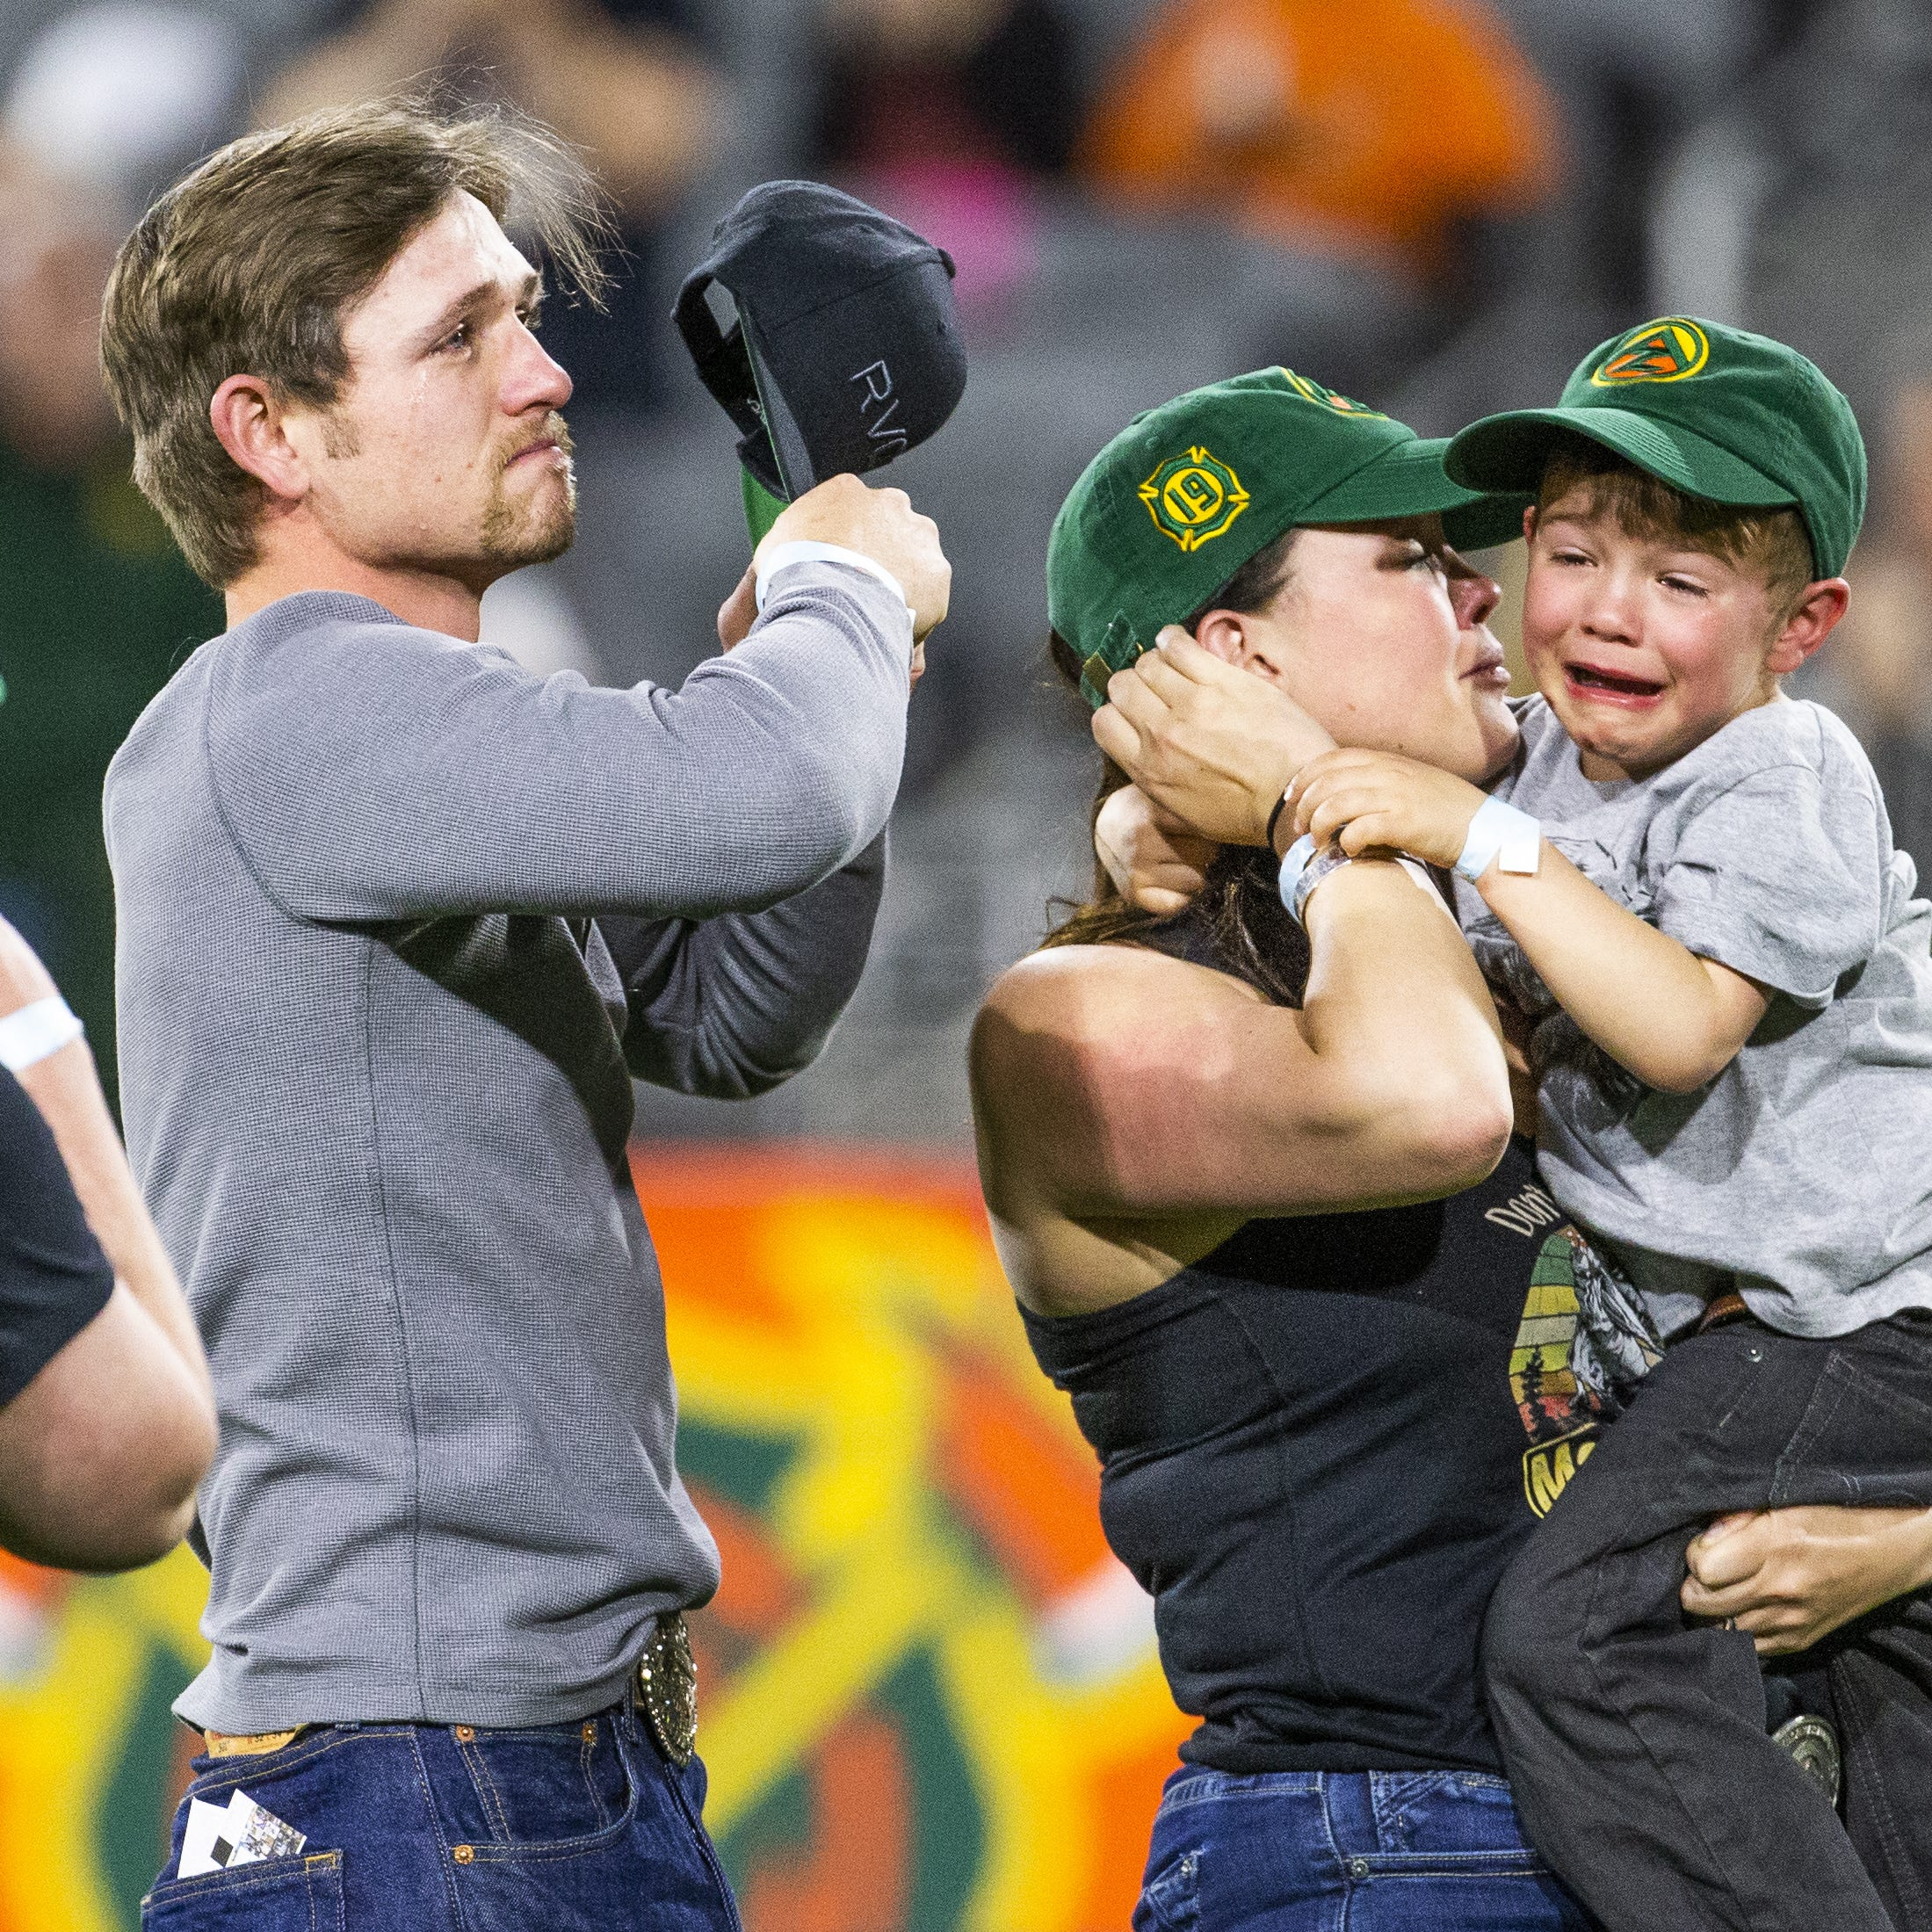 The inside story of how the AAF honored the Granite Mountain Hotshots in Arizona